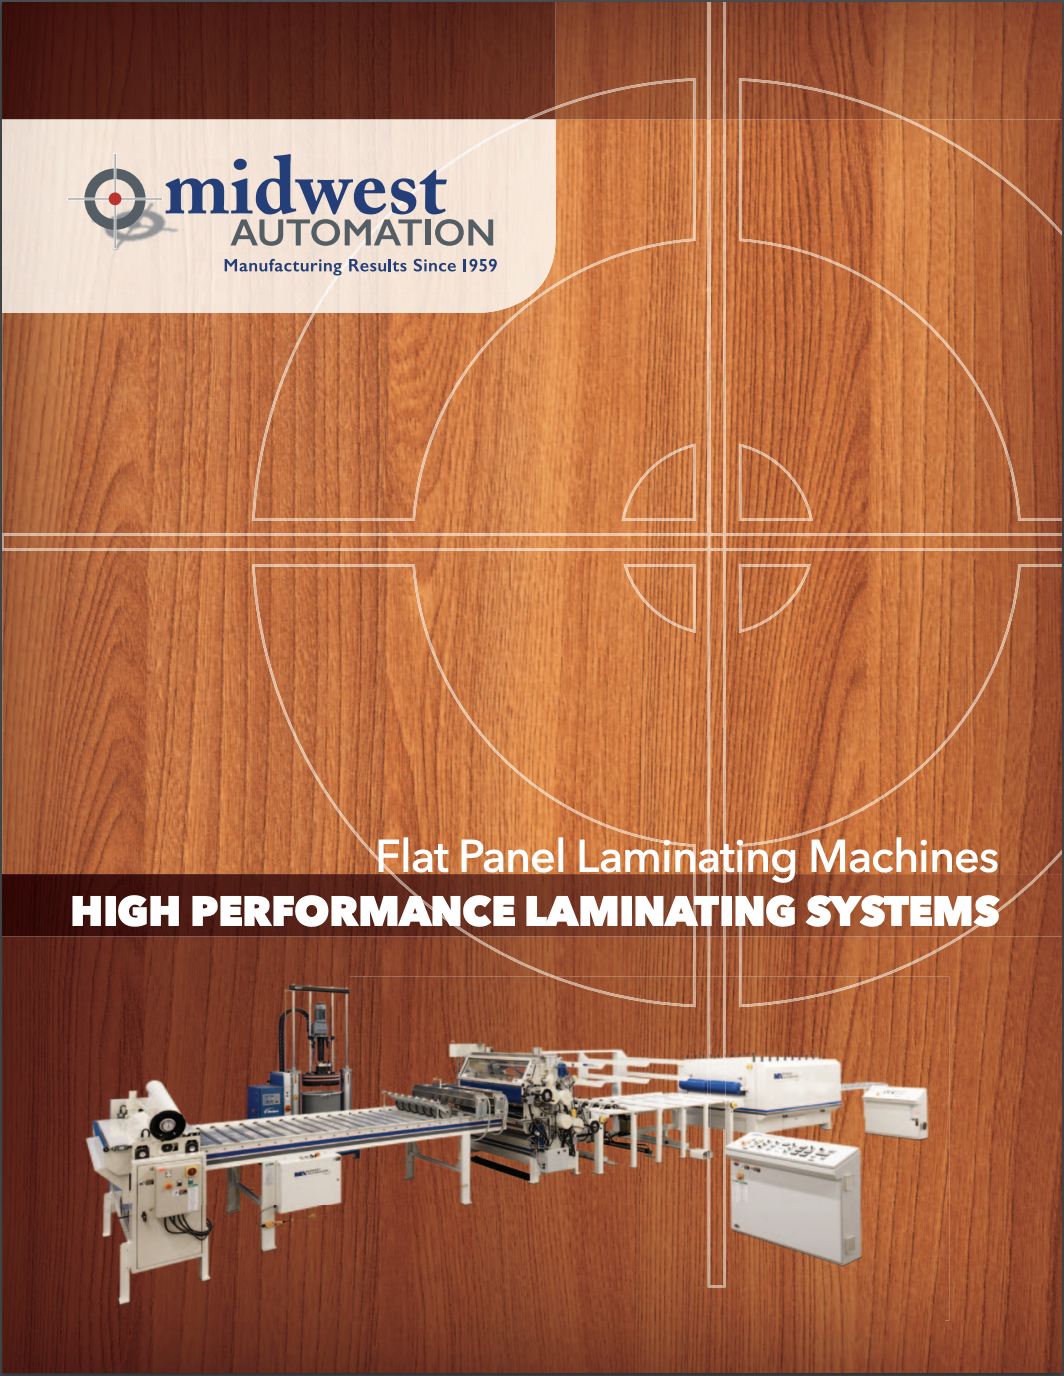 High Performance Laminating Systems